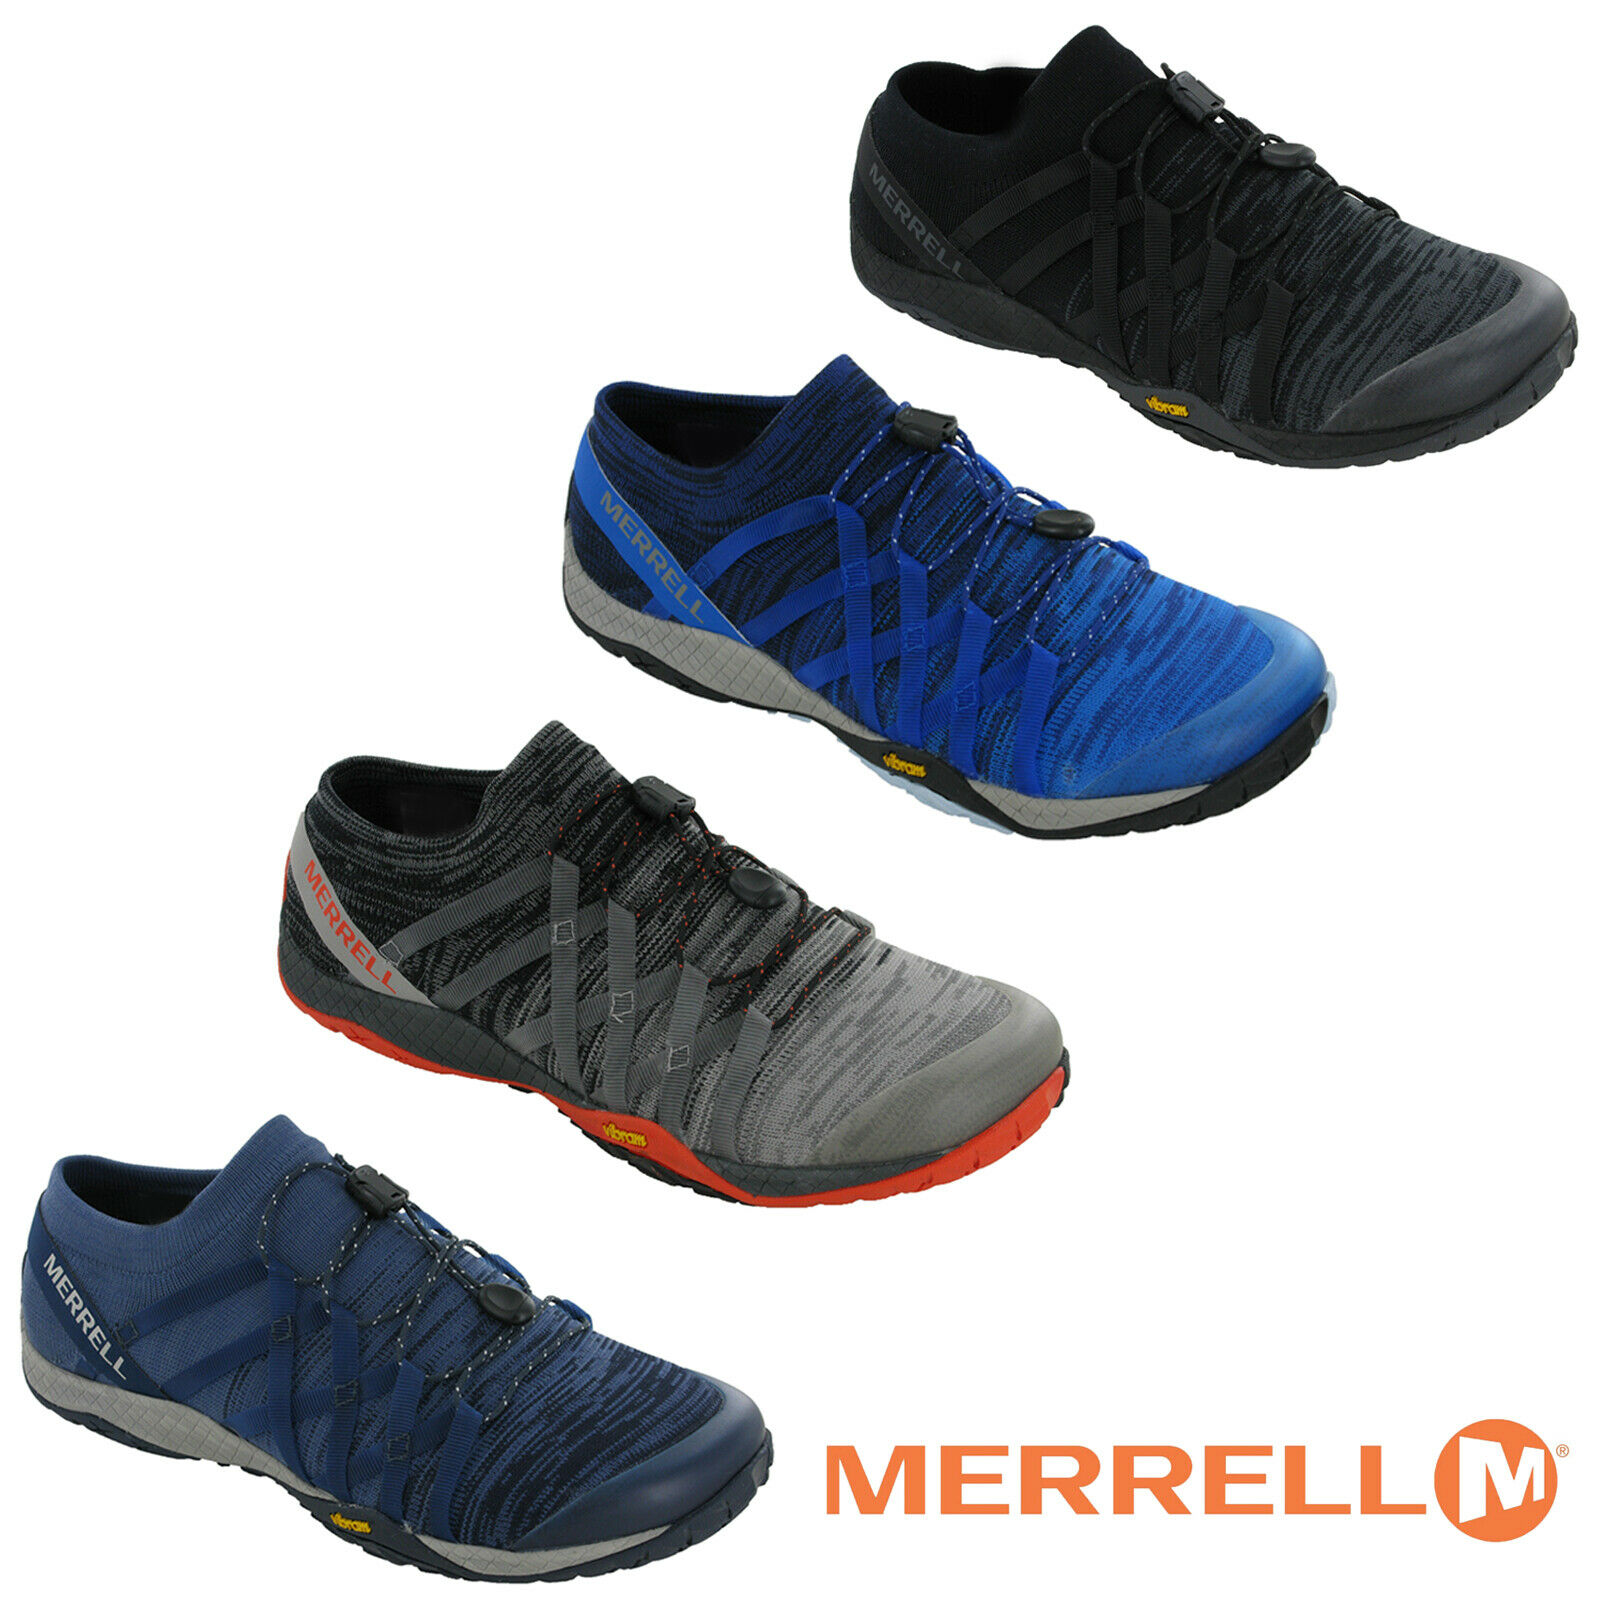 5cc0ddfb7b Details about Merrell Trail Glove 4 Knit Barefoot Mesh Trainers Mens Trails Vibram  Shoes